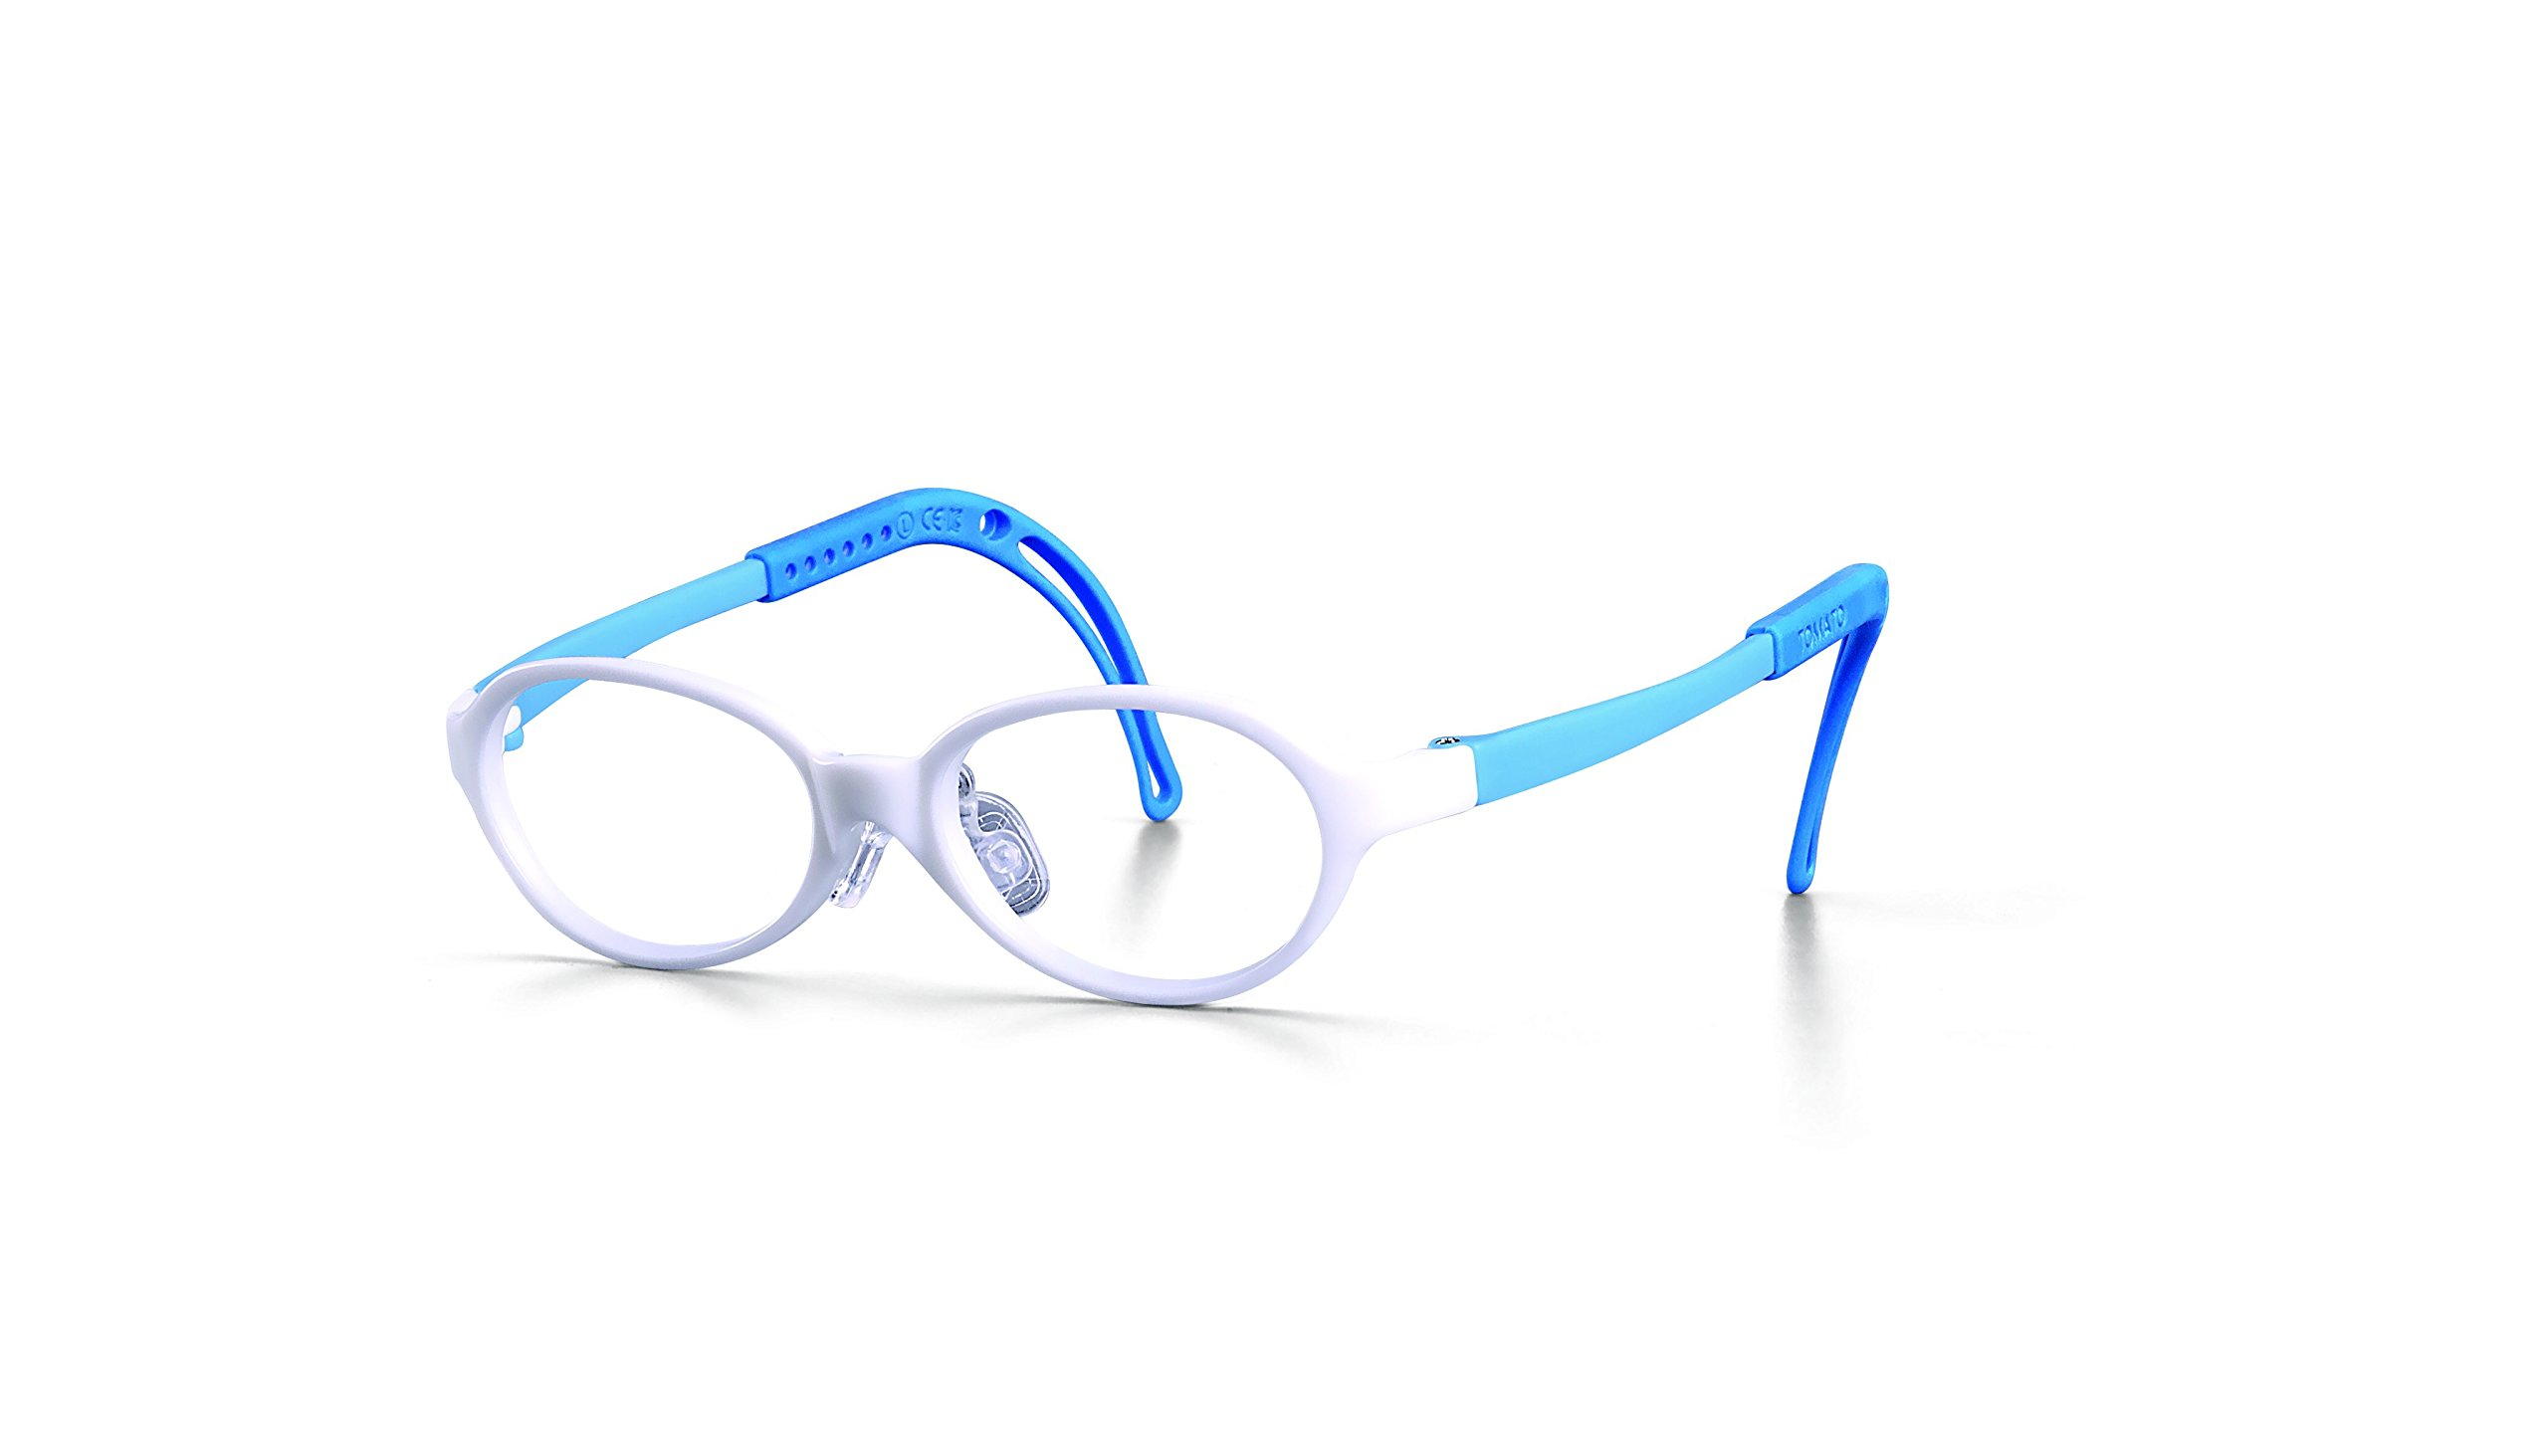 Eyeglass Frames for Kids, TKAC9-40, White Frame-Blue Stick, Light Weight, Comfortable Material, Highly Durable, Flexible, with Adjustable Nose Pad & Ear Tip, Shape intelligence and Resilience